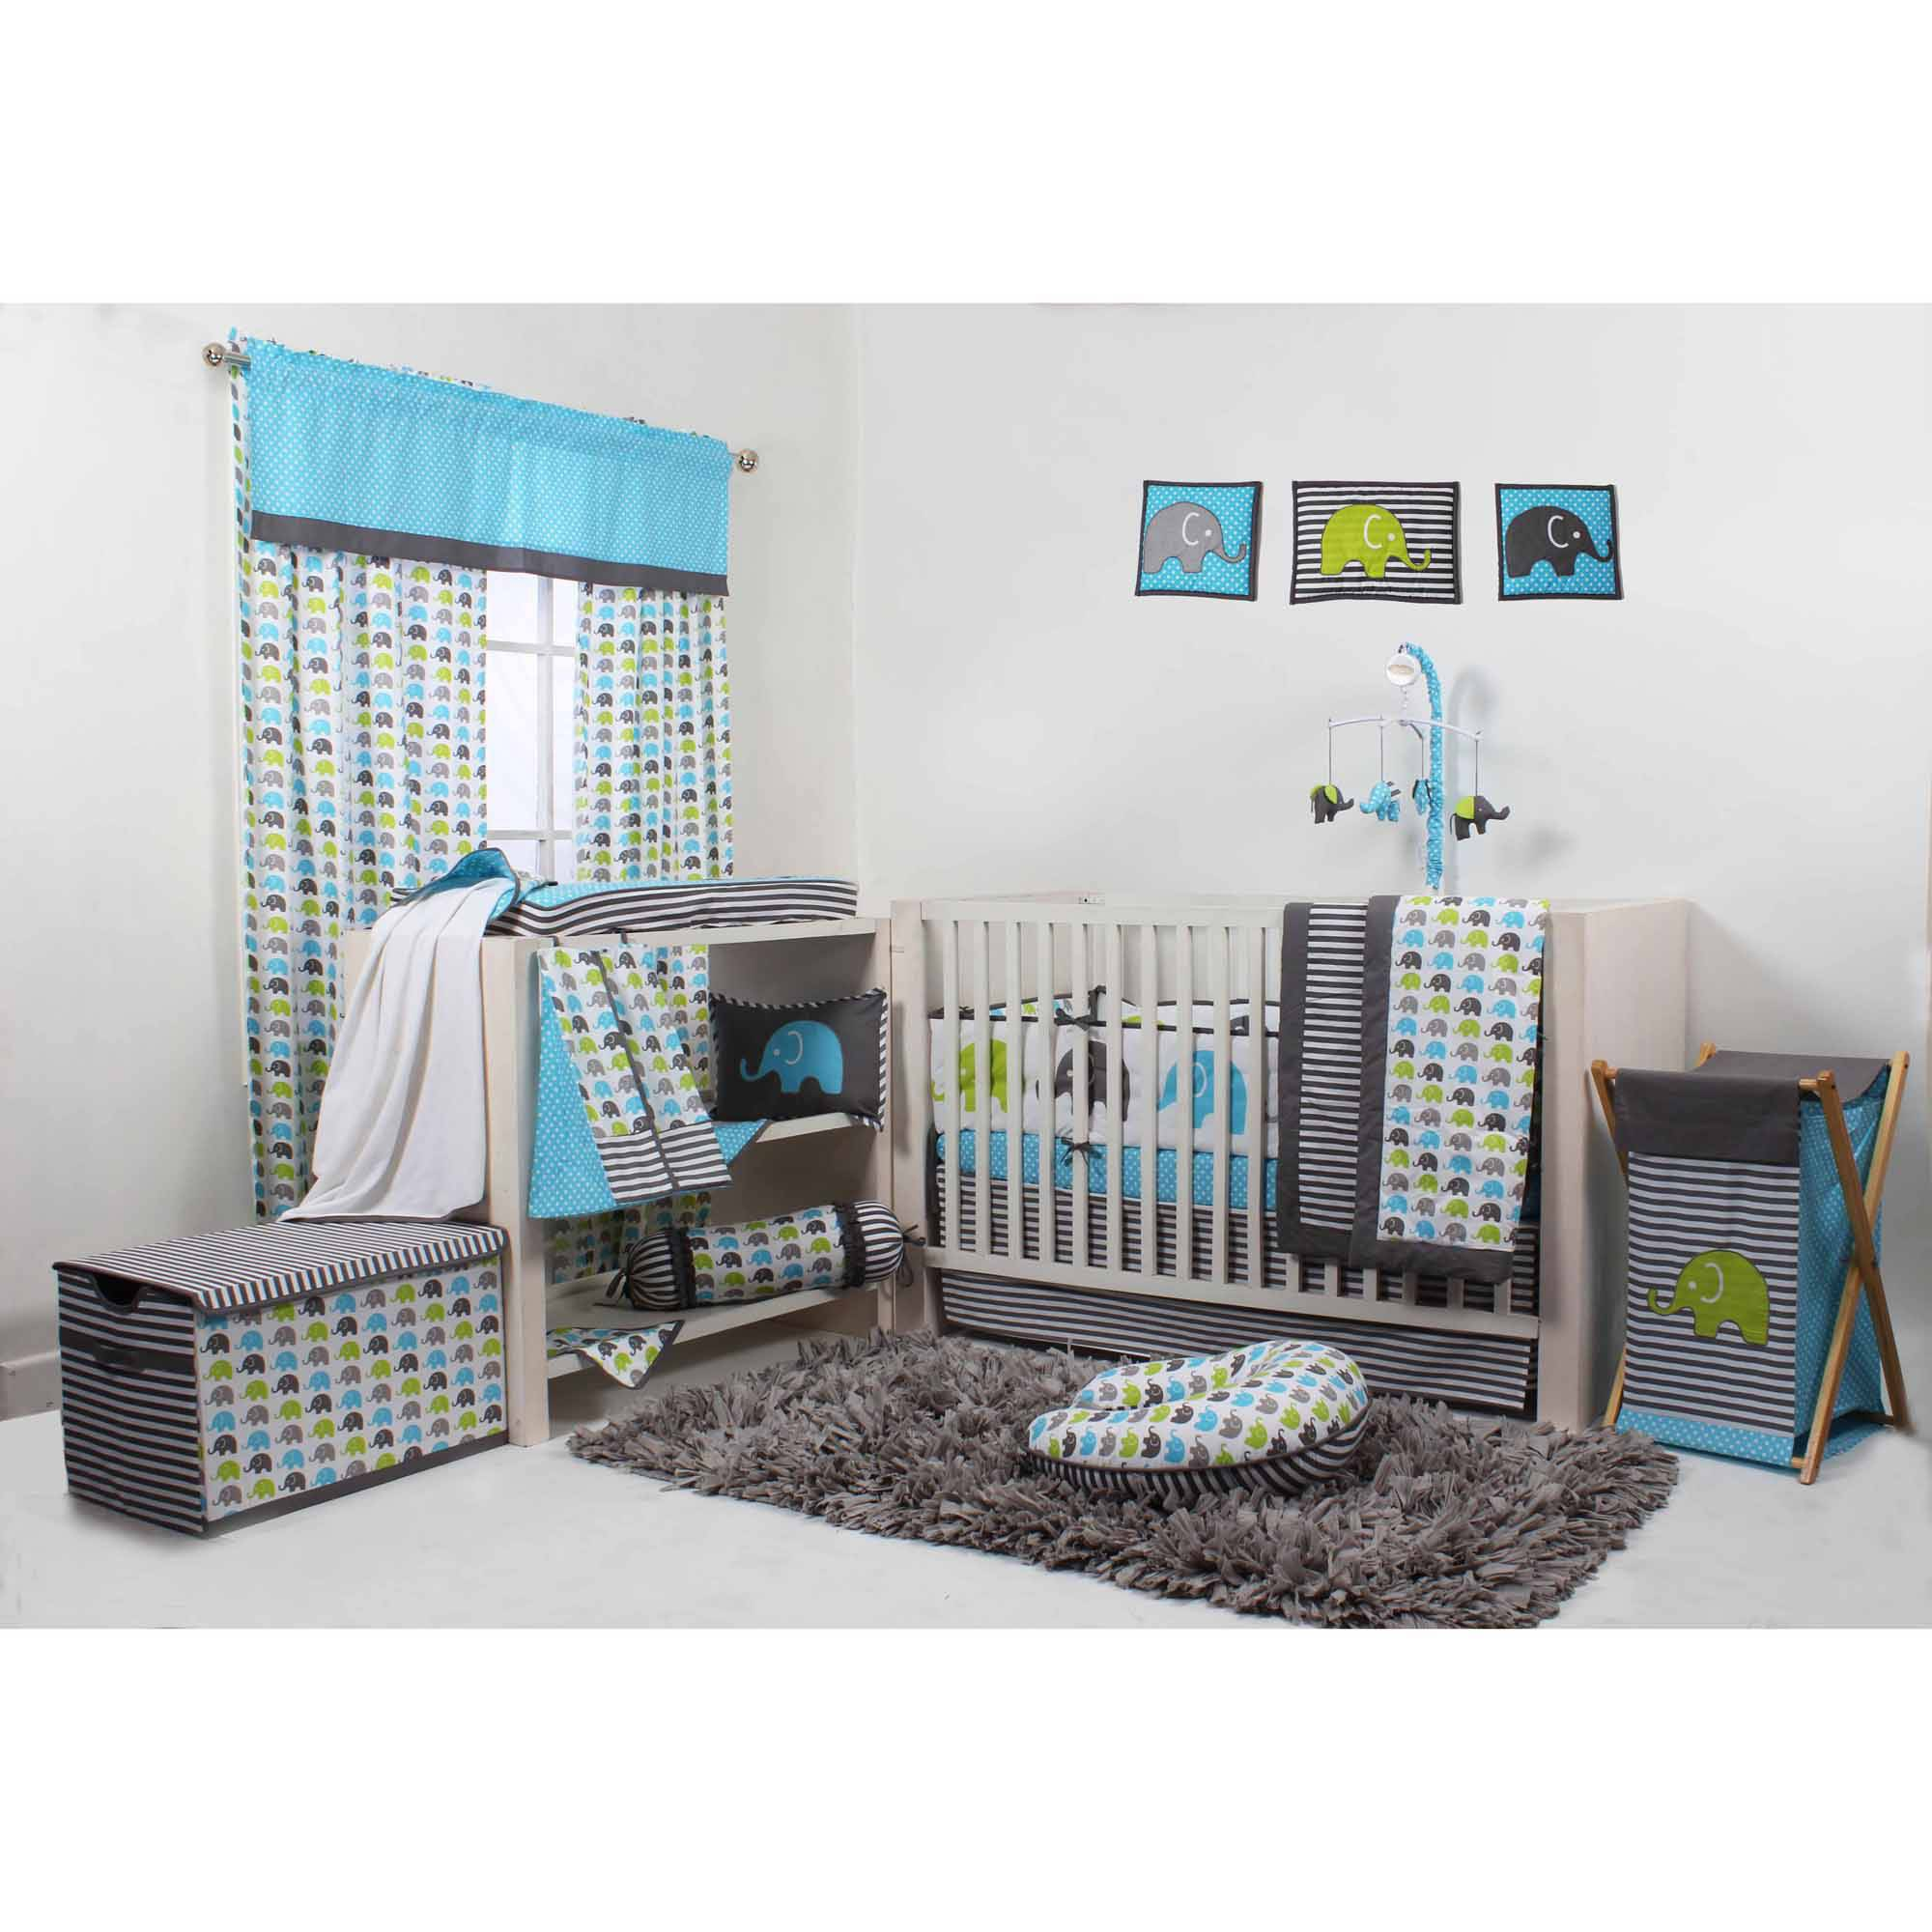 Bacati Elephants Aqua/Lime/Grey 10-Piece Crib Set with Bumper Pad for US standard Cribs